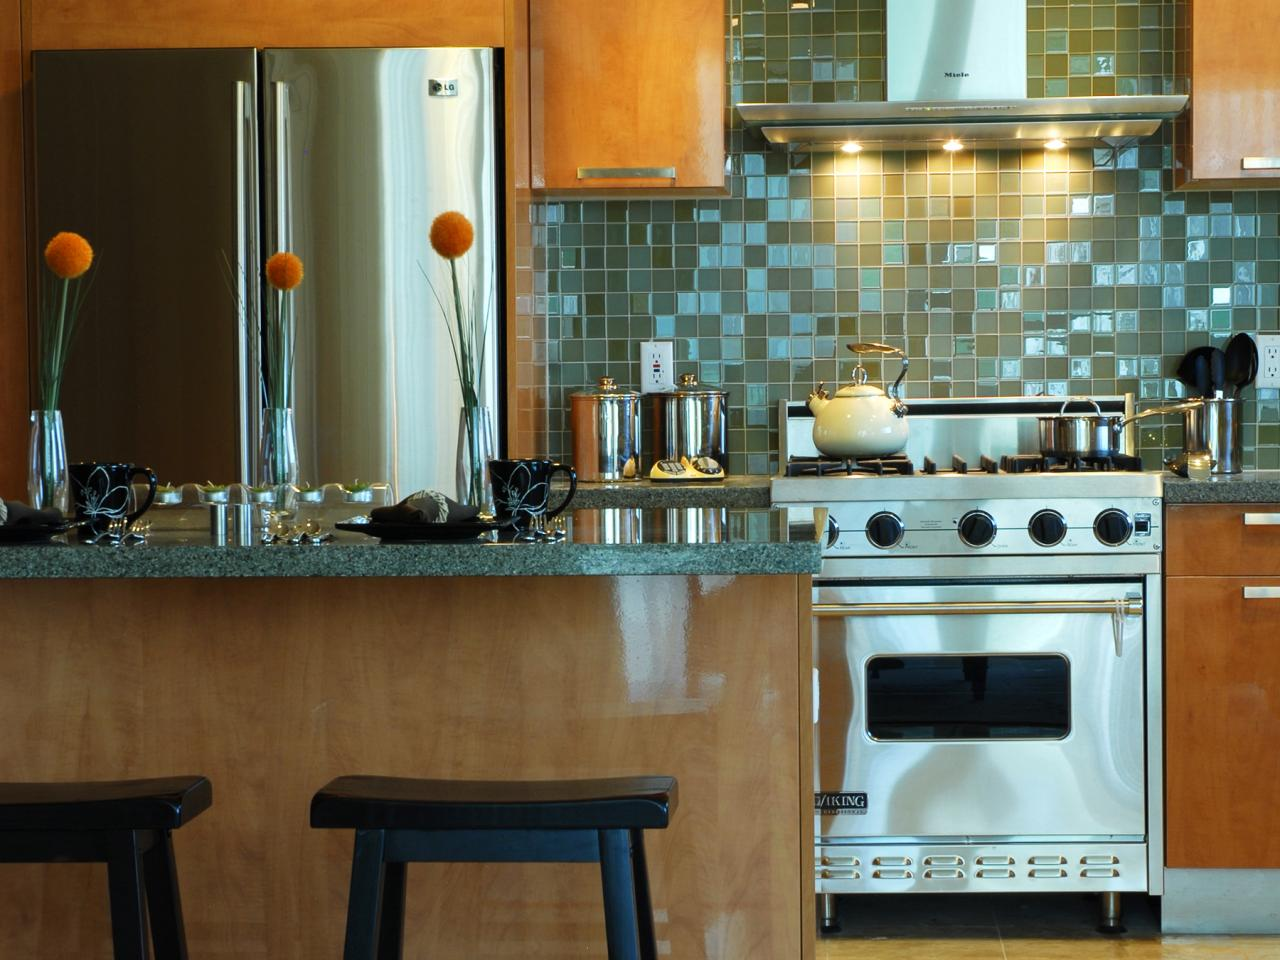 Grey Tile Backsplash and Glossy Range Hood in Appealing Kitchen Decorating Ideas with Oak Island and Black Stools